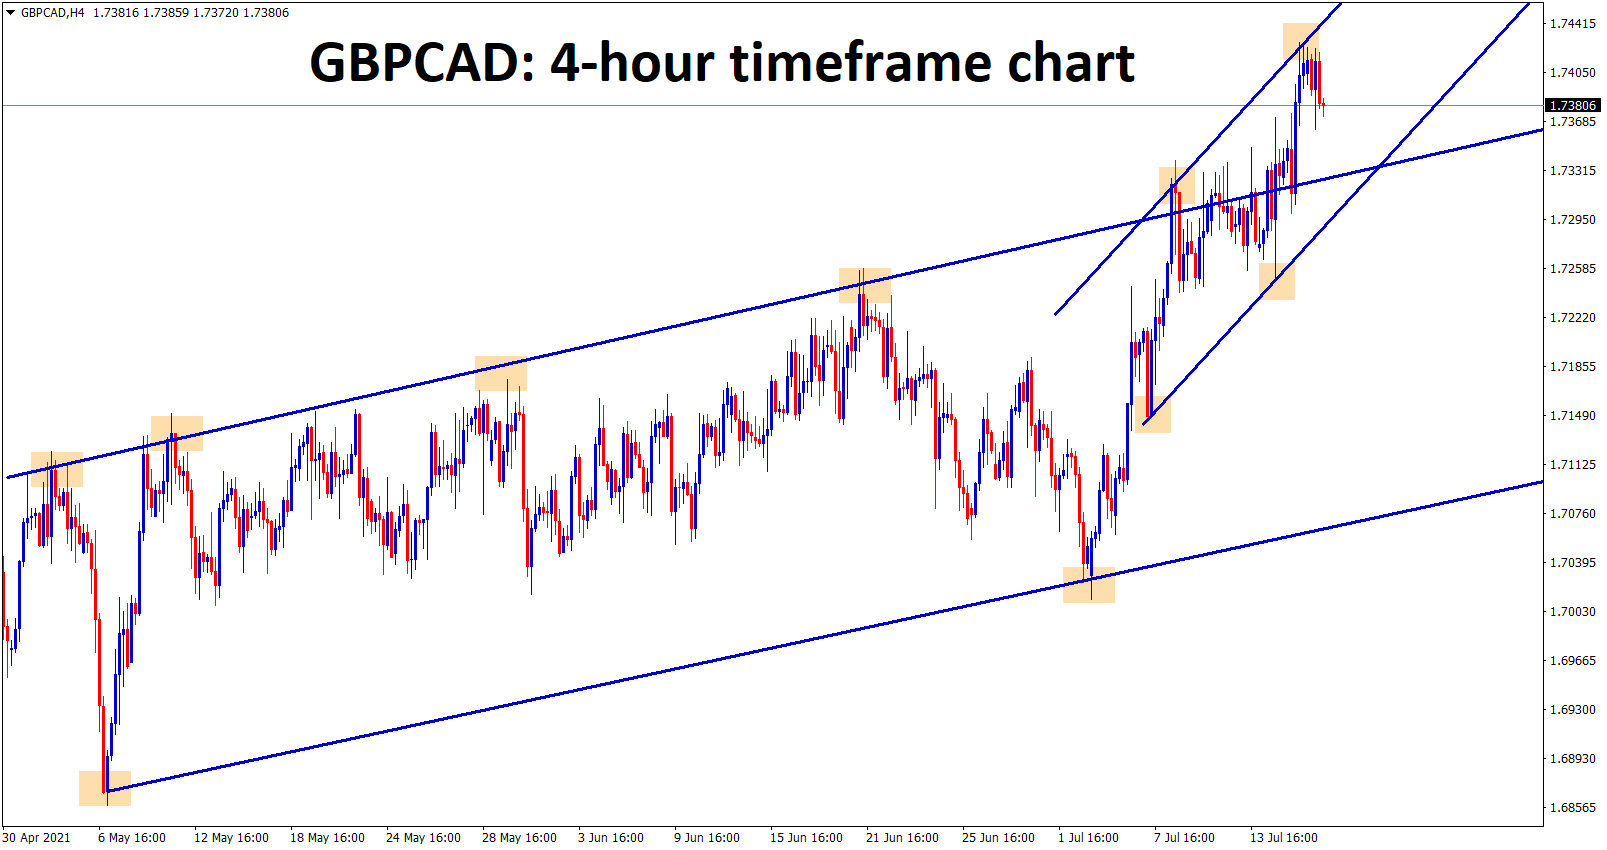 GBPCAD has broken the top level of the Uptrend line and now starts to move between the minor ascending channel